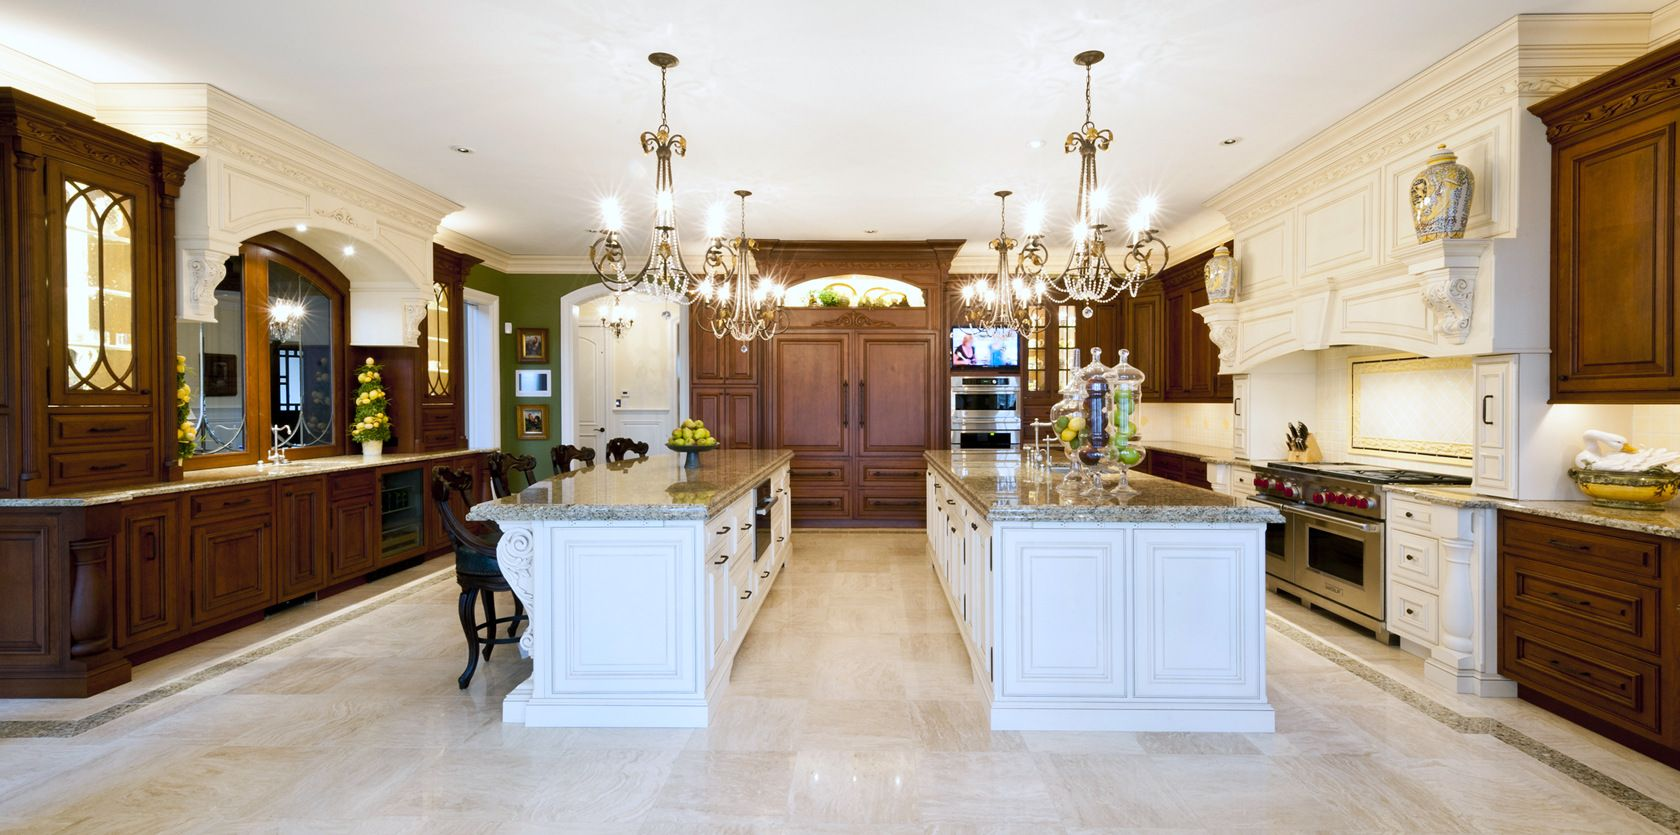 Custom Kitchen Design Best Custom Double Island Kitchen Designcvl Designs Ocean City Nj Inspiration